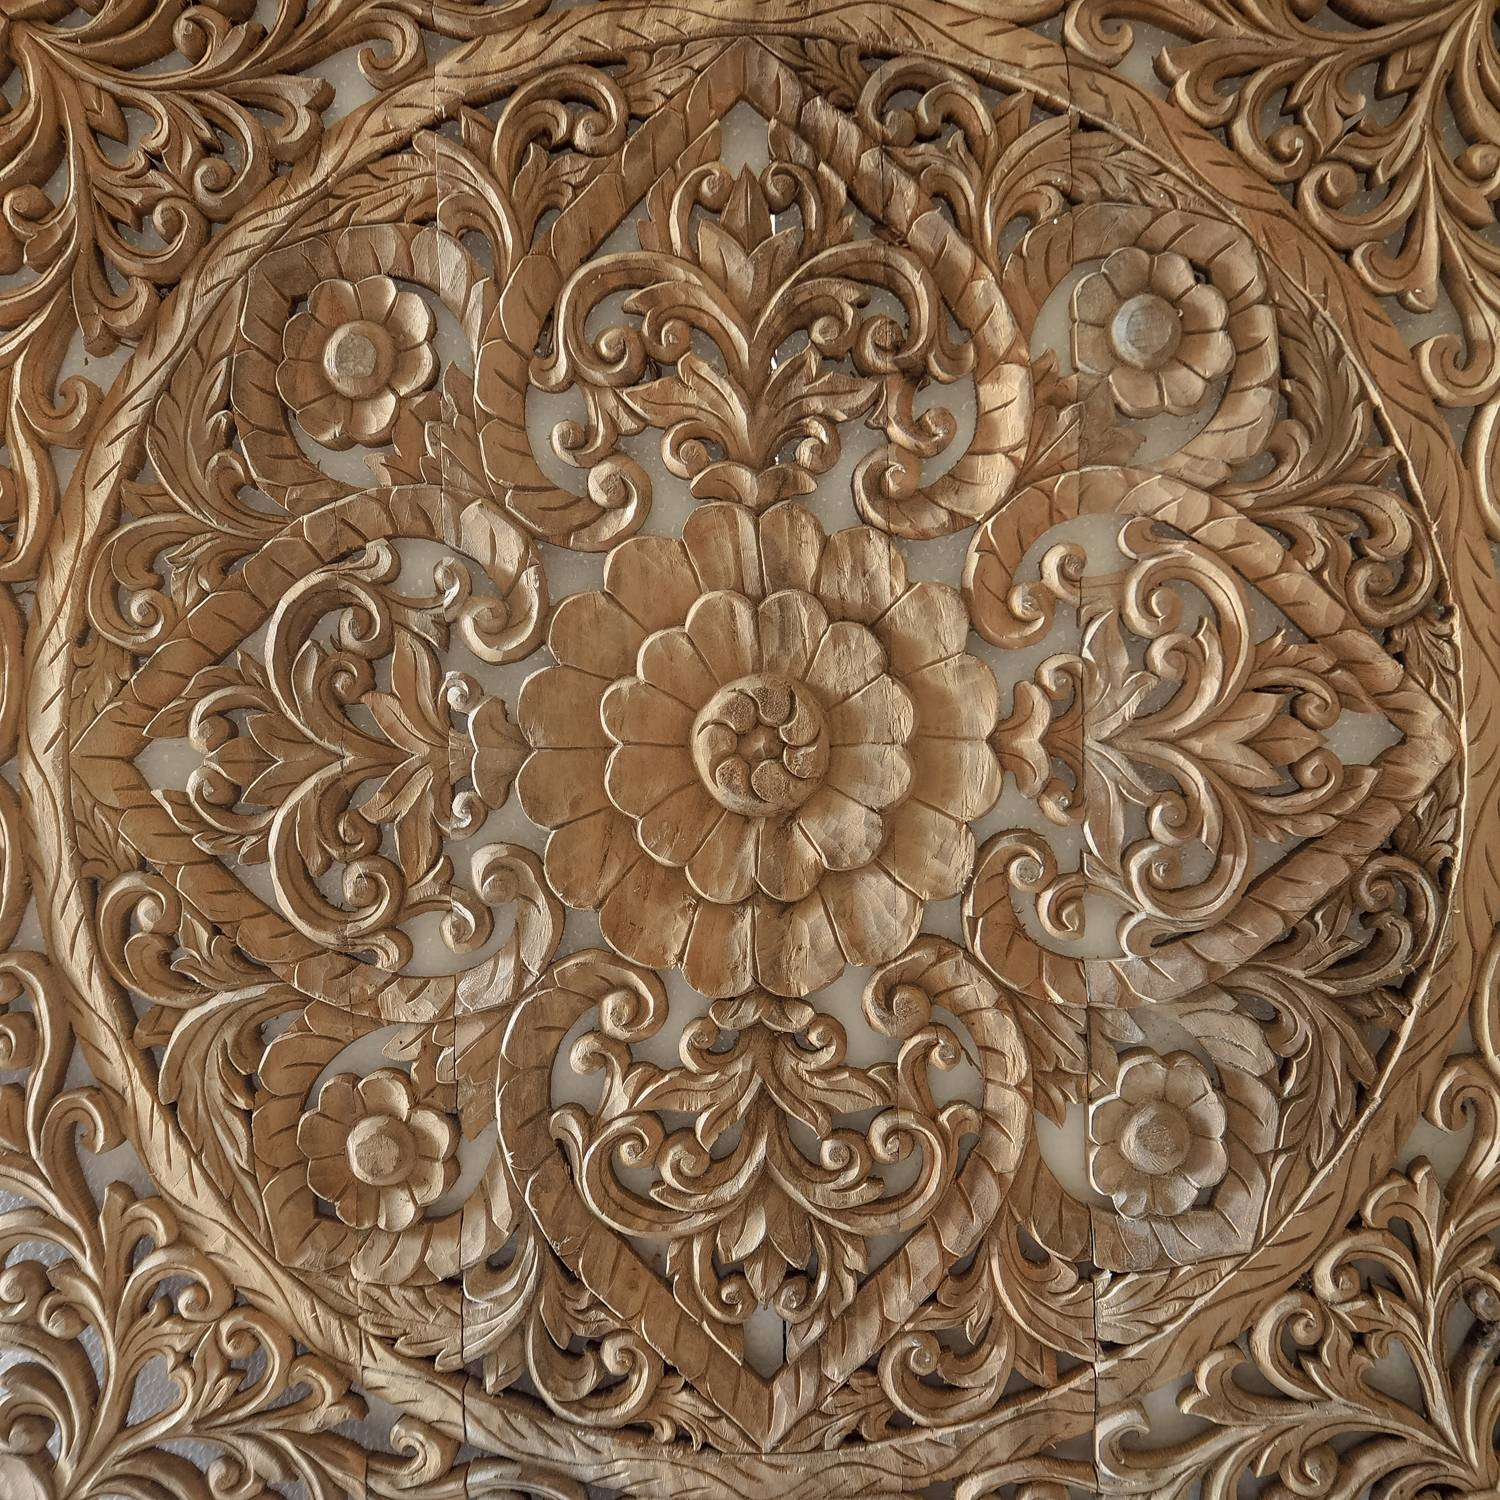 Hand Carved Wall Panel From Bali – Siam Sawadee With Regard To 2017 Wood Carved Wall Art Panels (View 13 of 25)